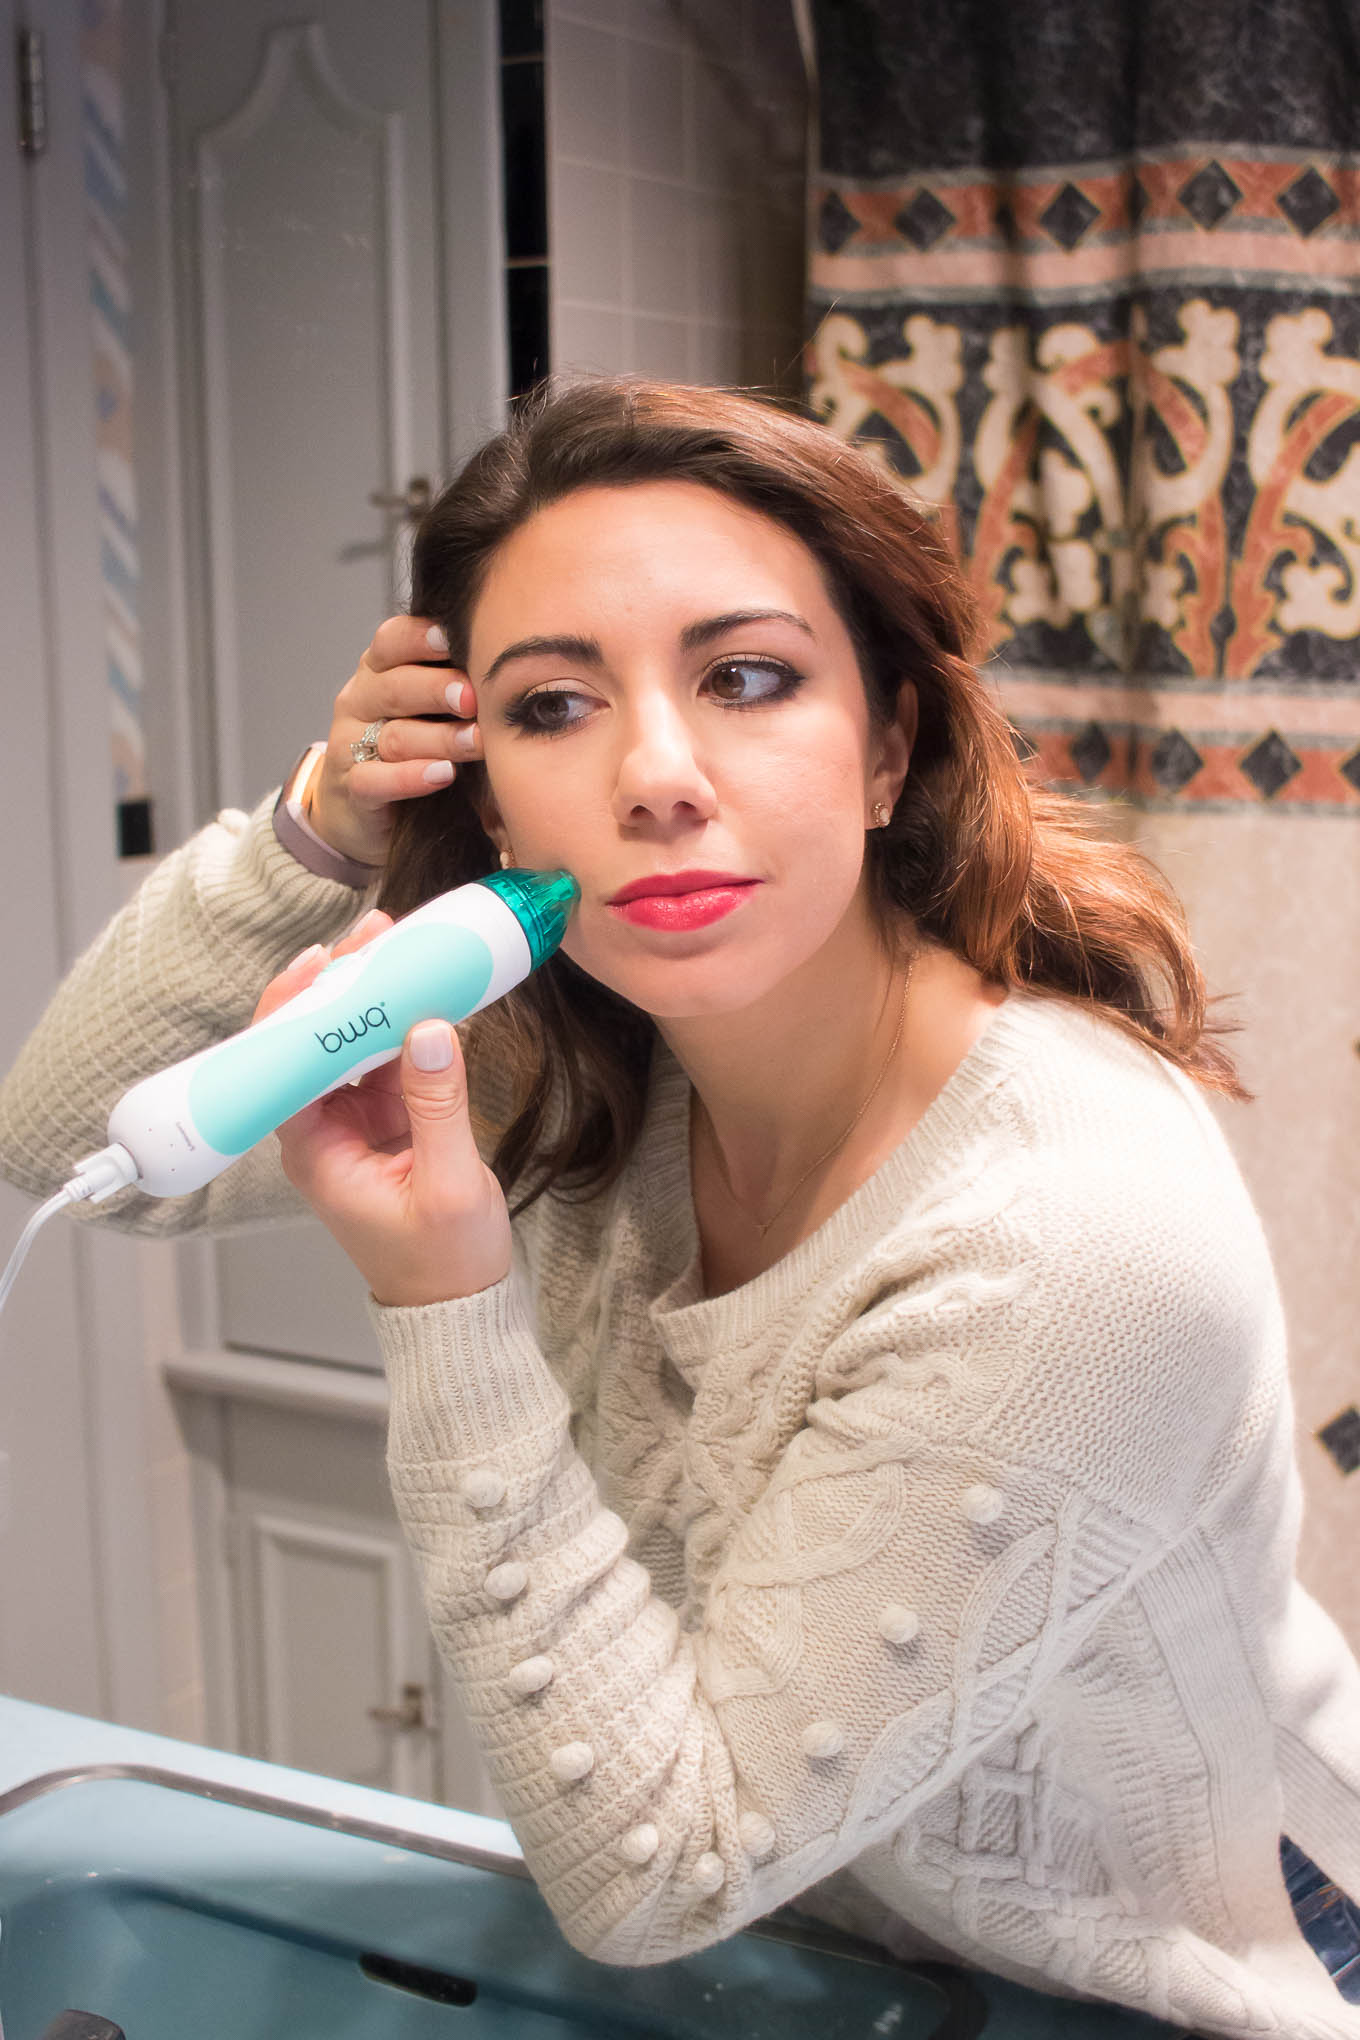 Lifestyle blogger Roxanne of Glass of Glam's review of the PMD Microderm device